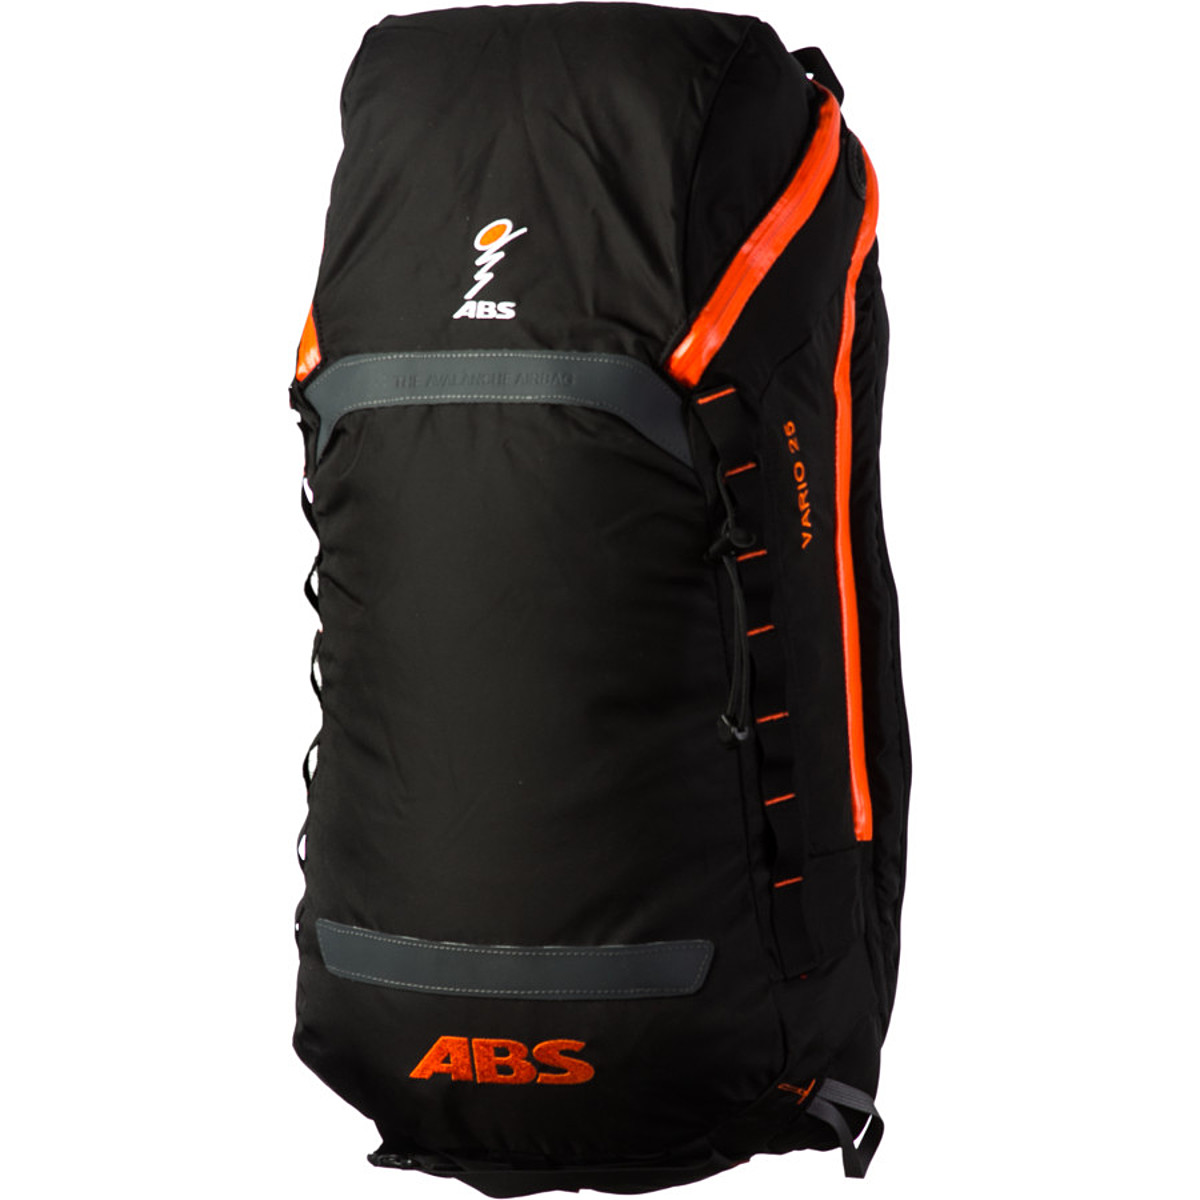 ABS Vario 25 Backpack